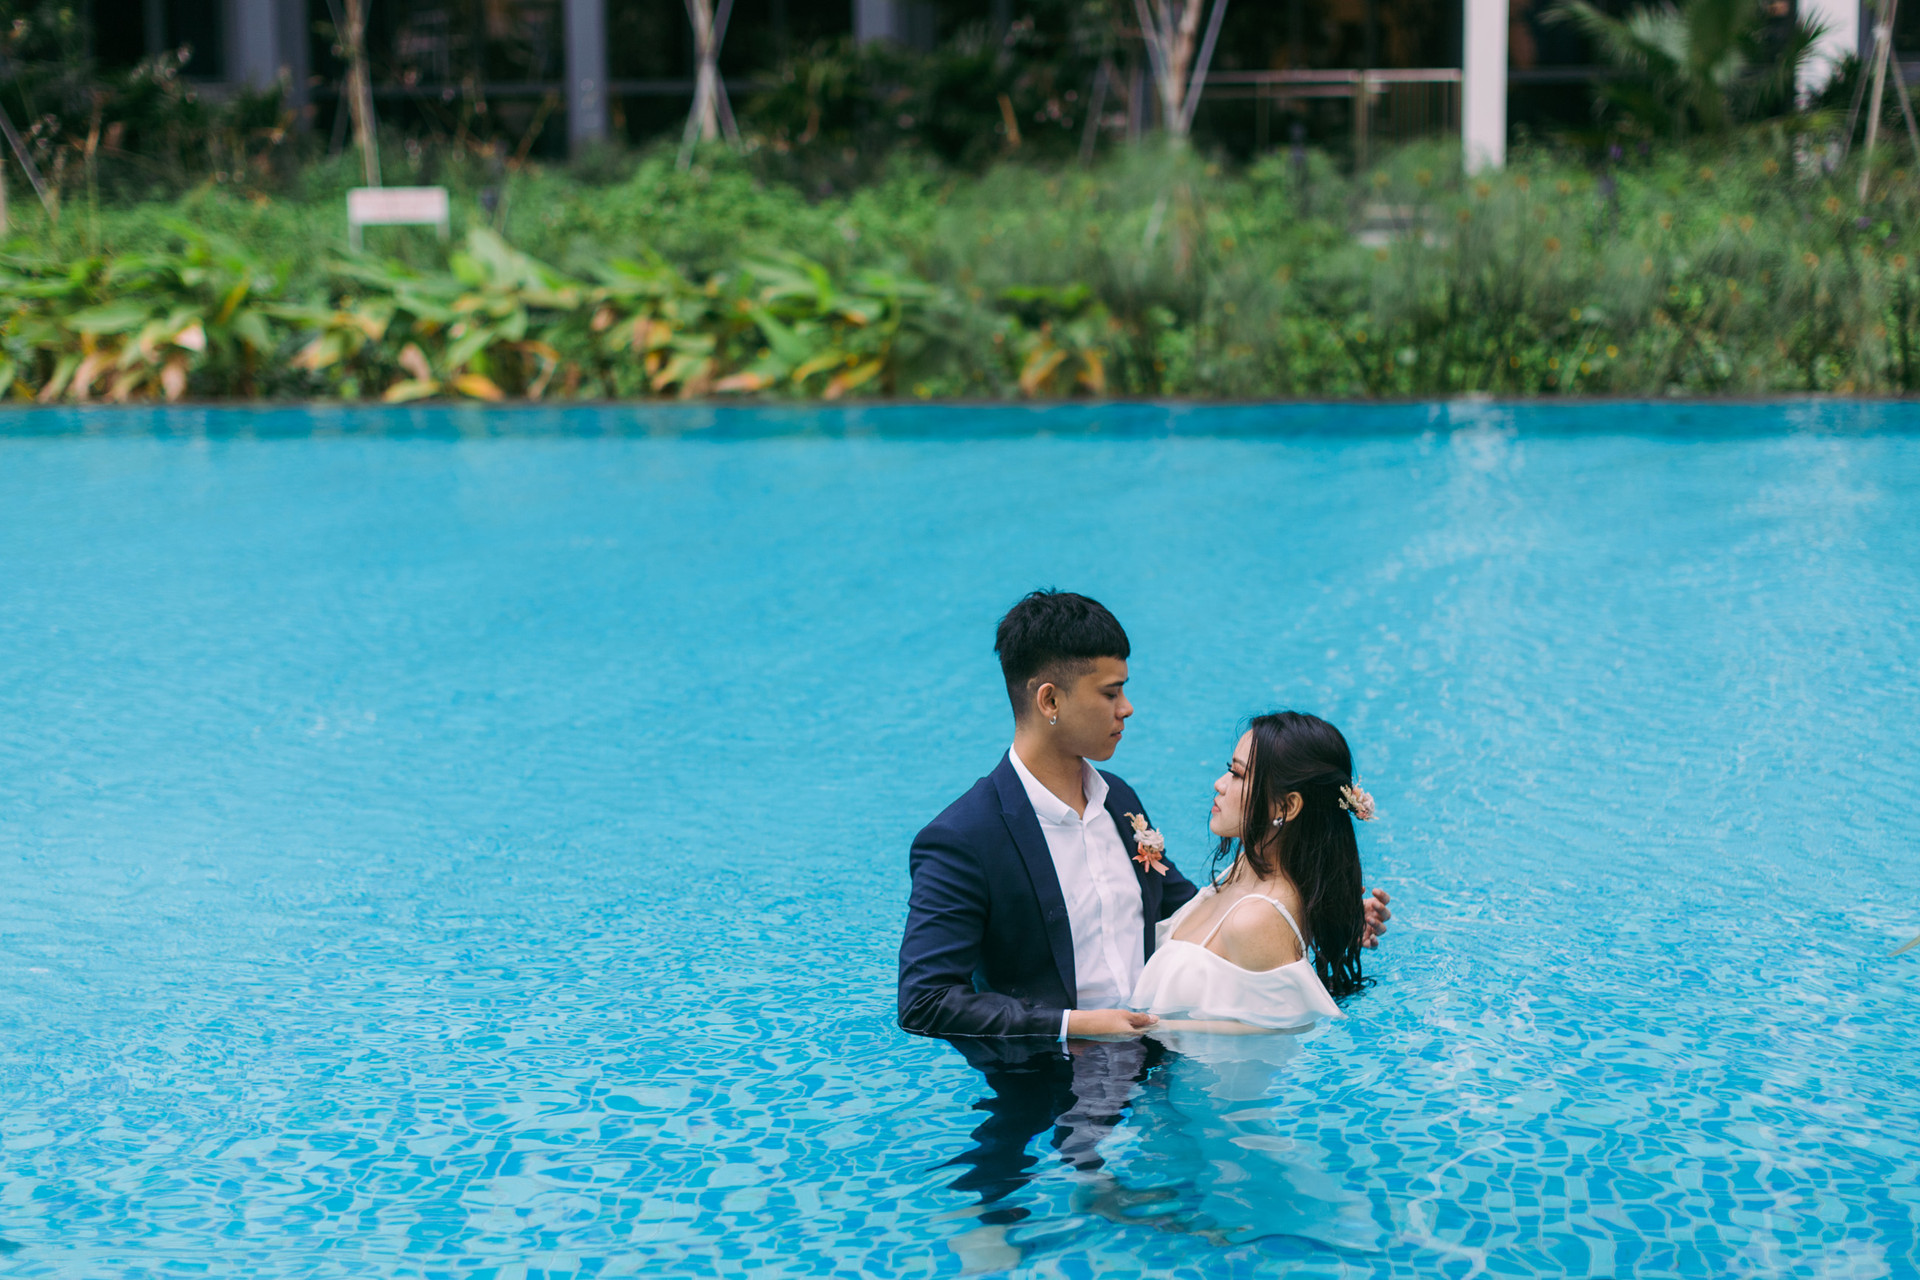 boonheng and jessica-139.jpg